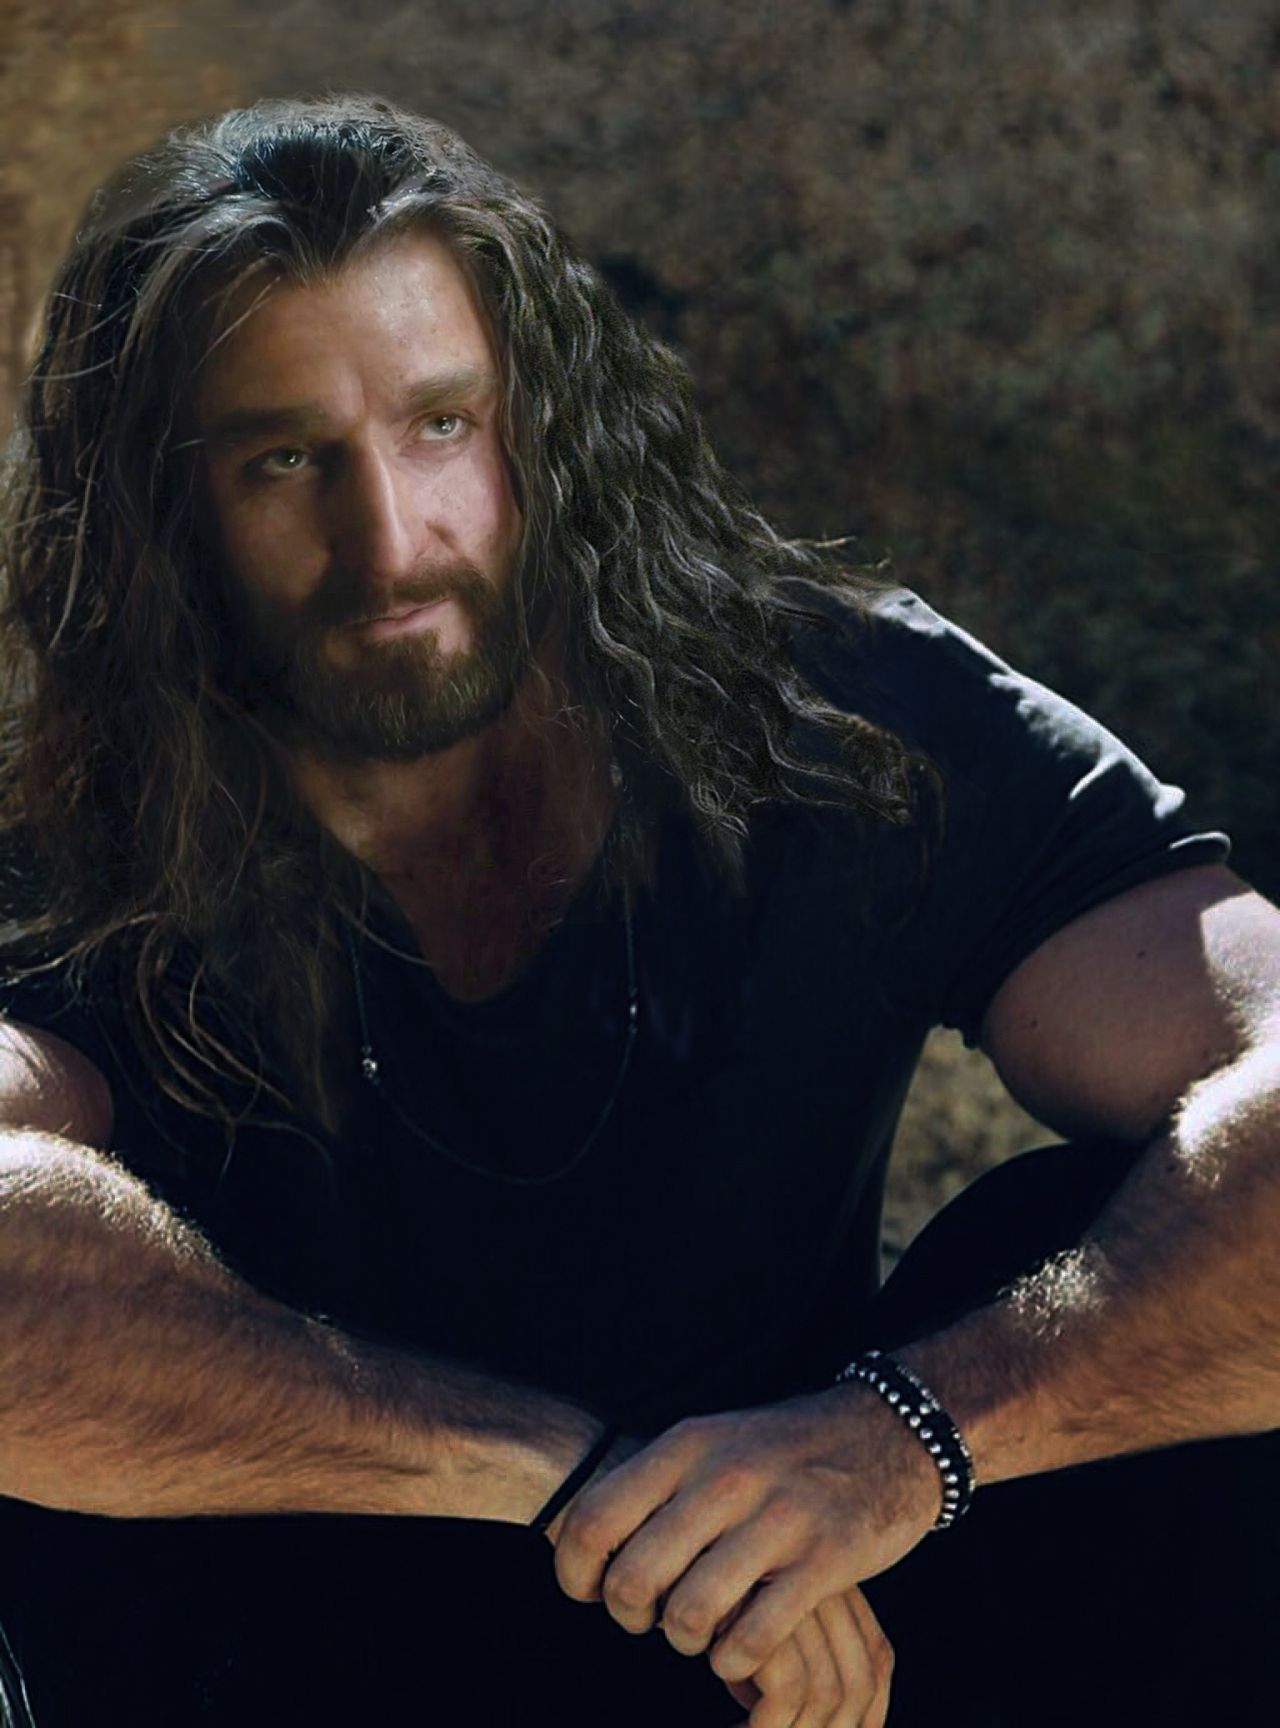 Modern-AU | Thorin edited and art pictures in 2019 | The